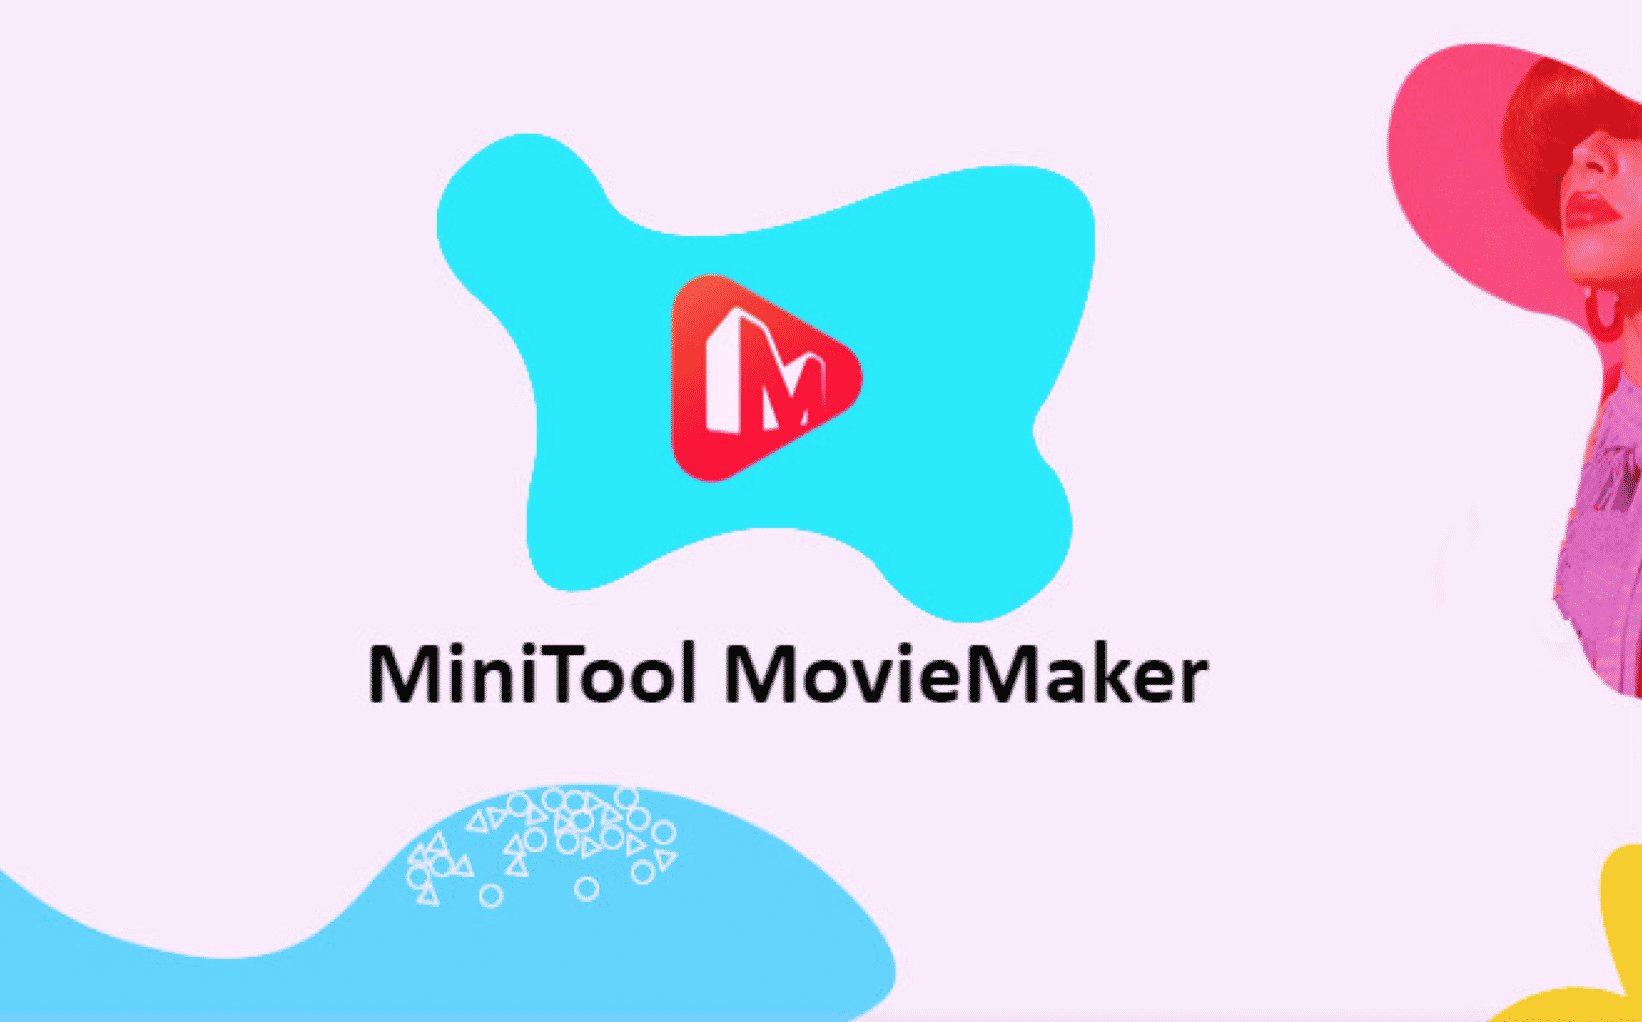 MiniTool MovieMaker [2.8] Crack With Registration Key Free Download [Updated]